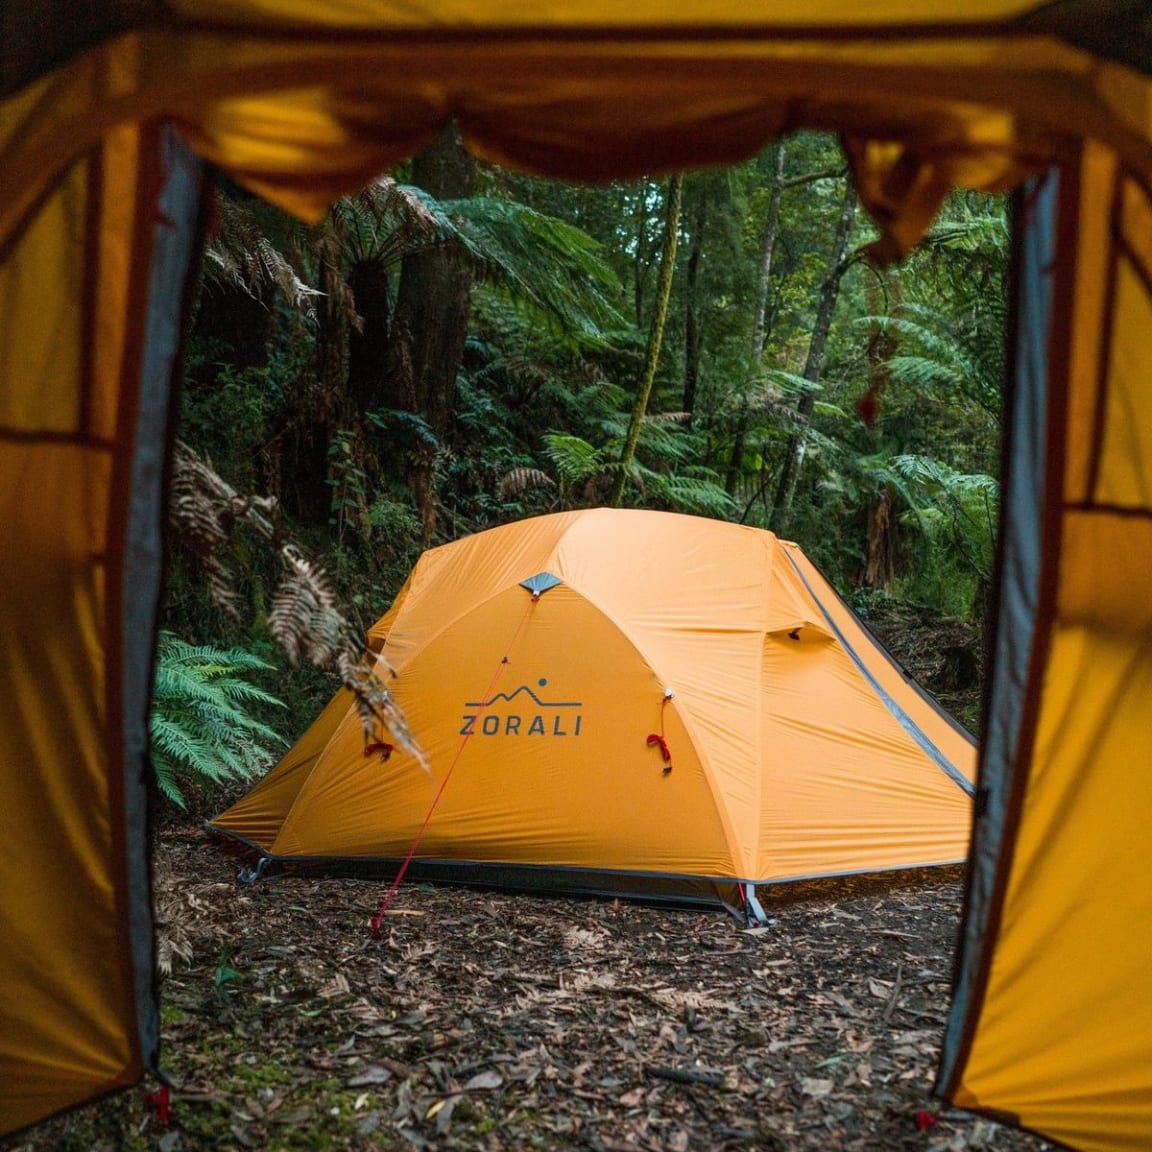 How To: Set up Zorali's Highlands 2P tent